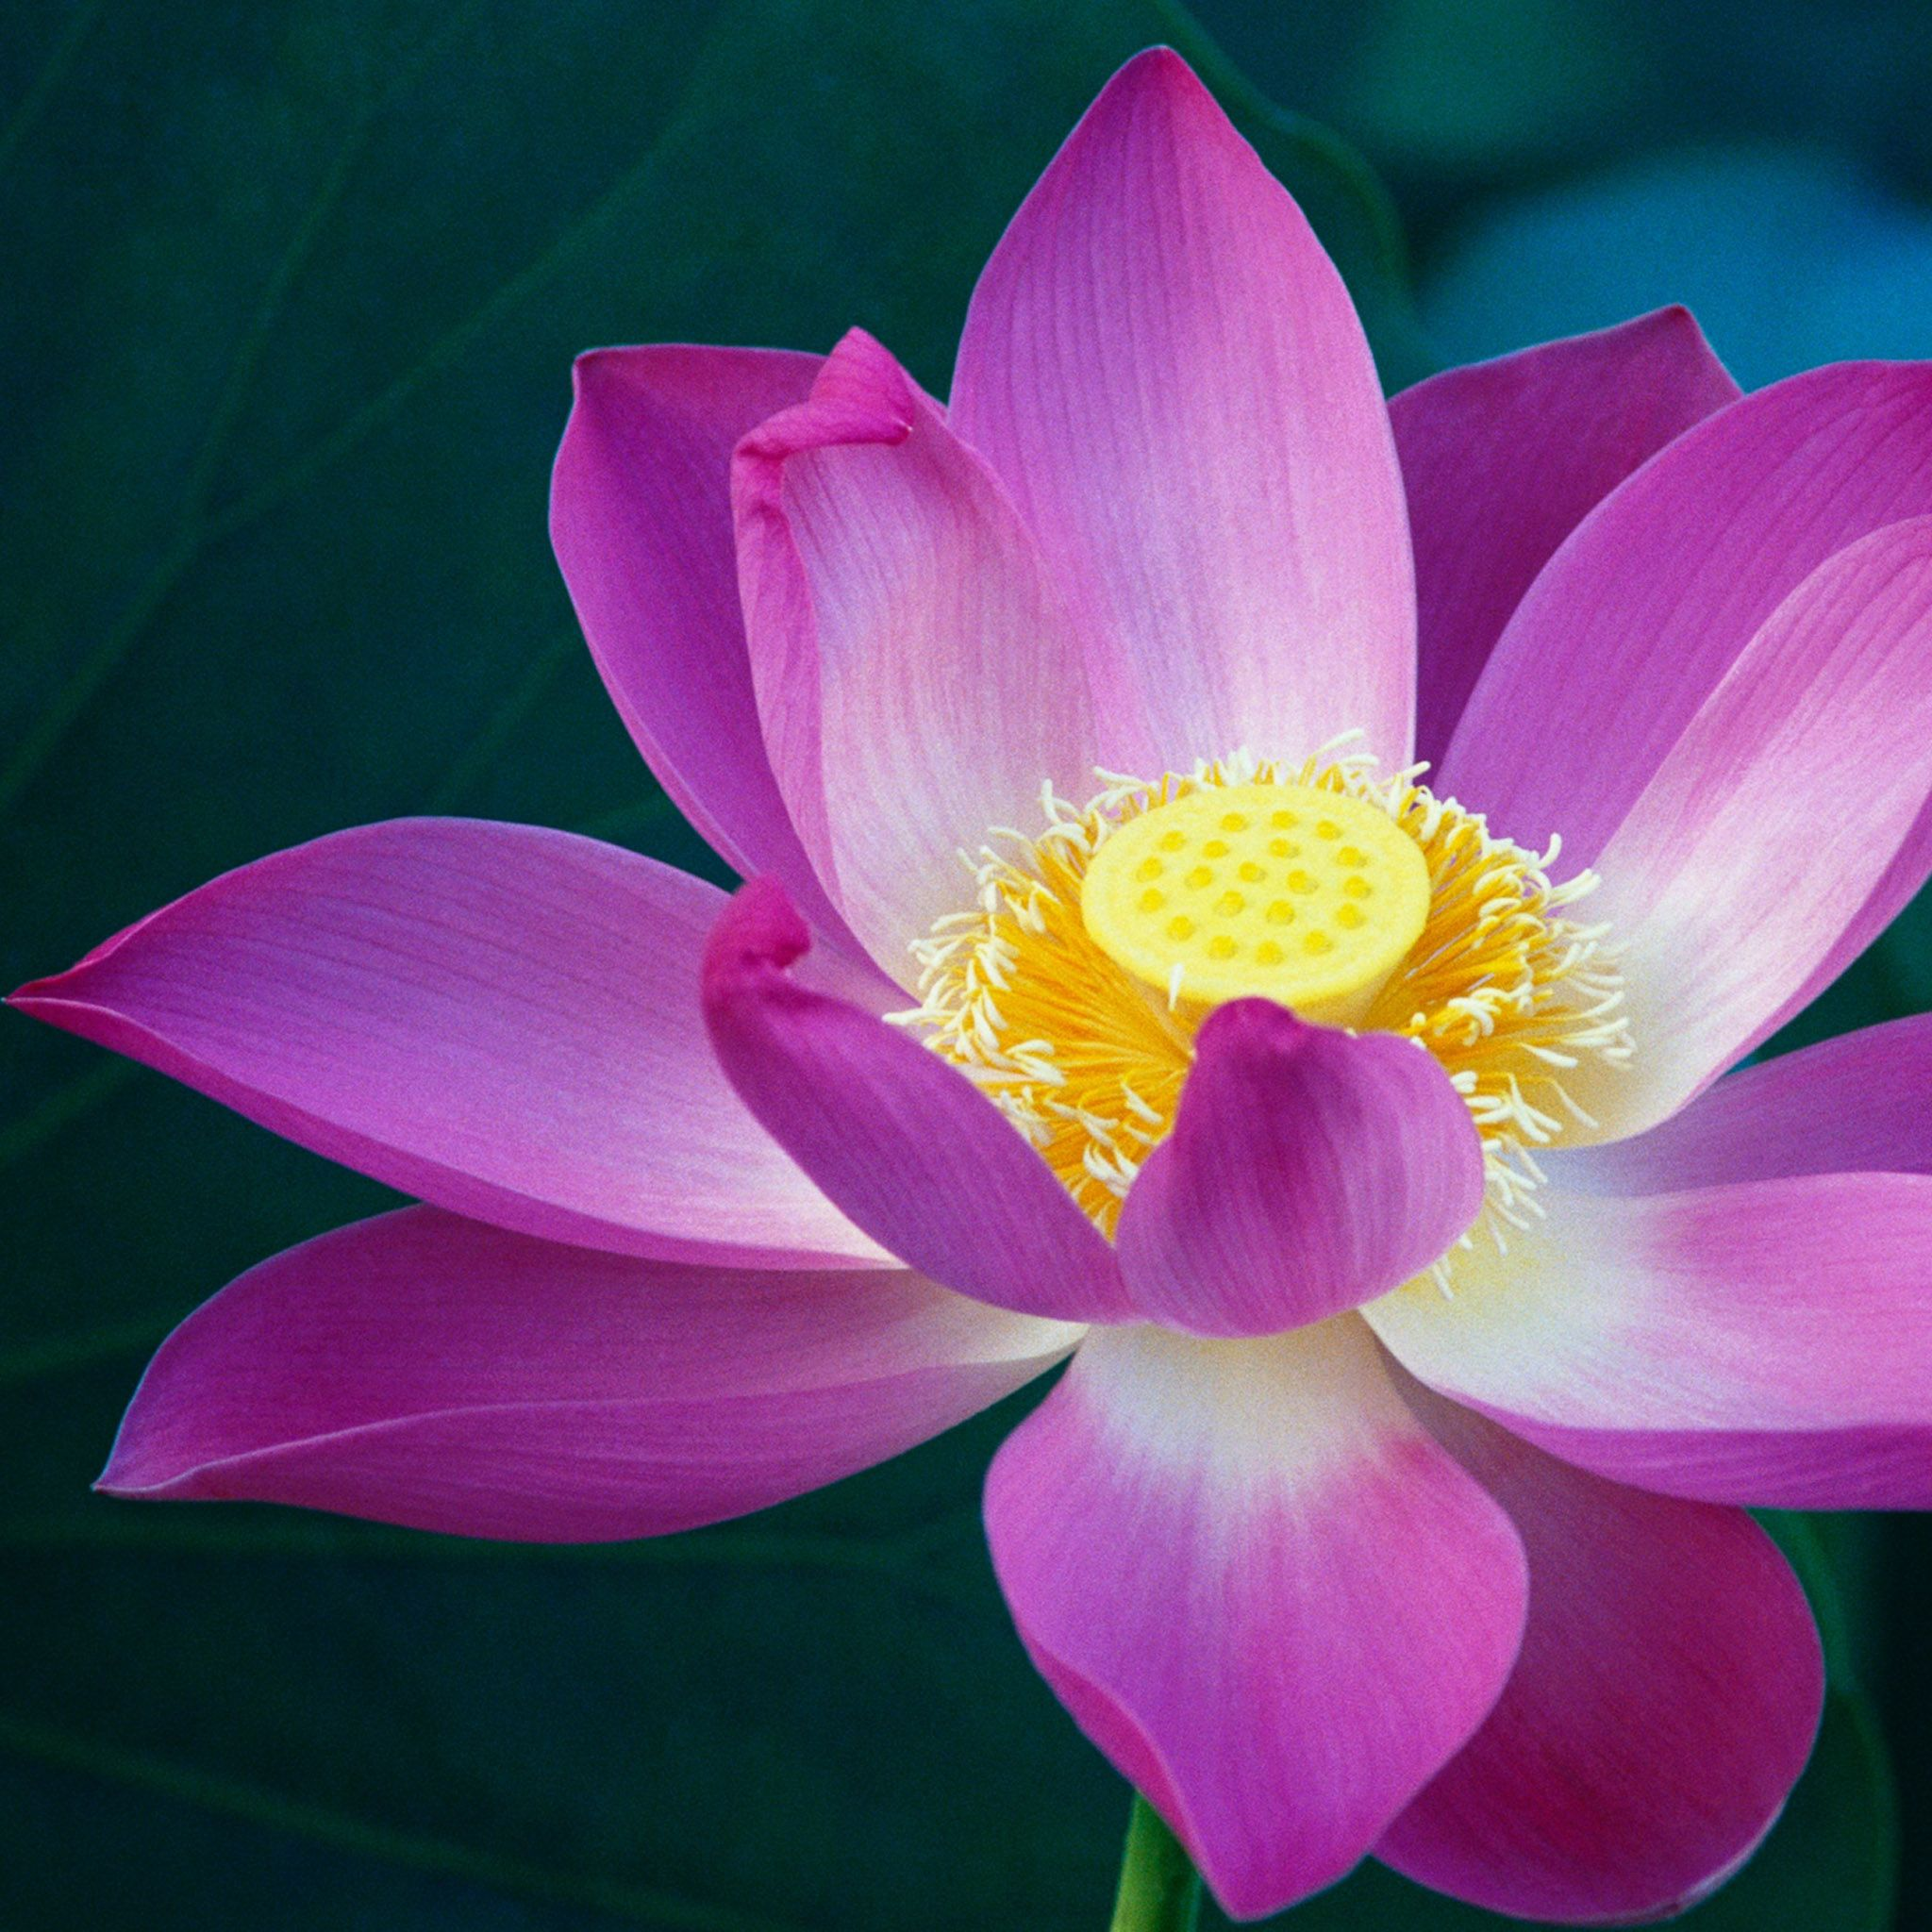 Wale Lotus Flower Bomb Image Collections Flower Wallpaper Hd